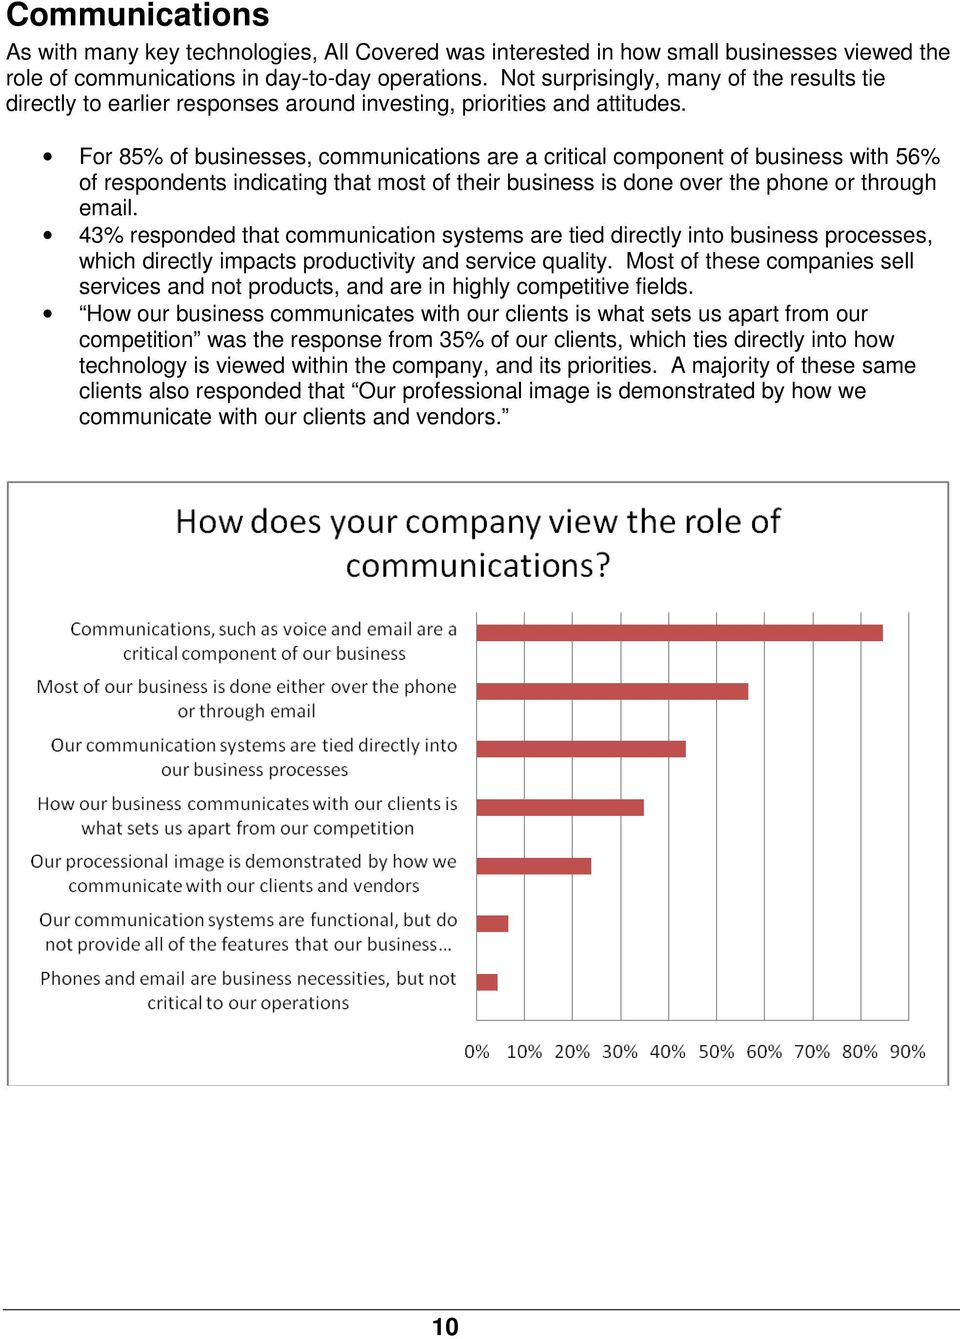 For 85% of businesses, communications are a critical component of business with 56% of respondents indicating that most of their business is done over the phone or through email.